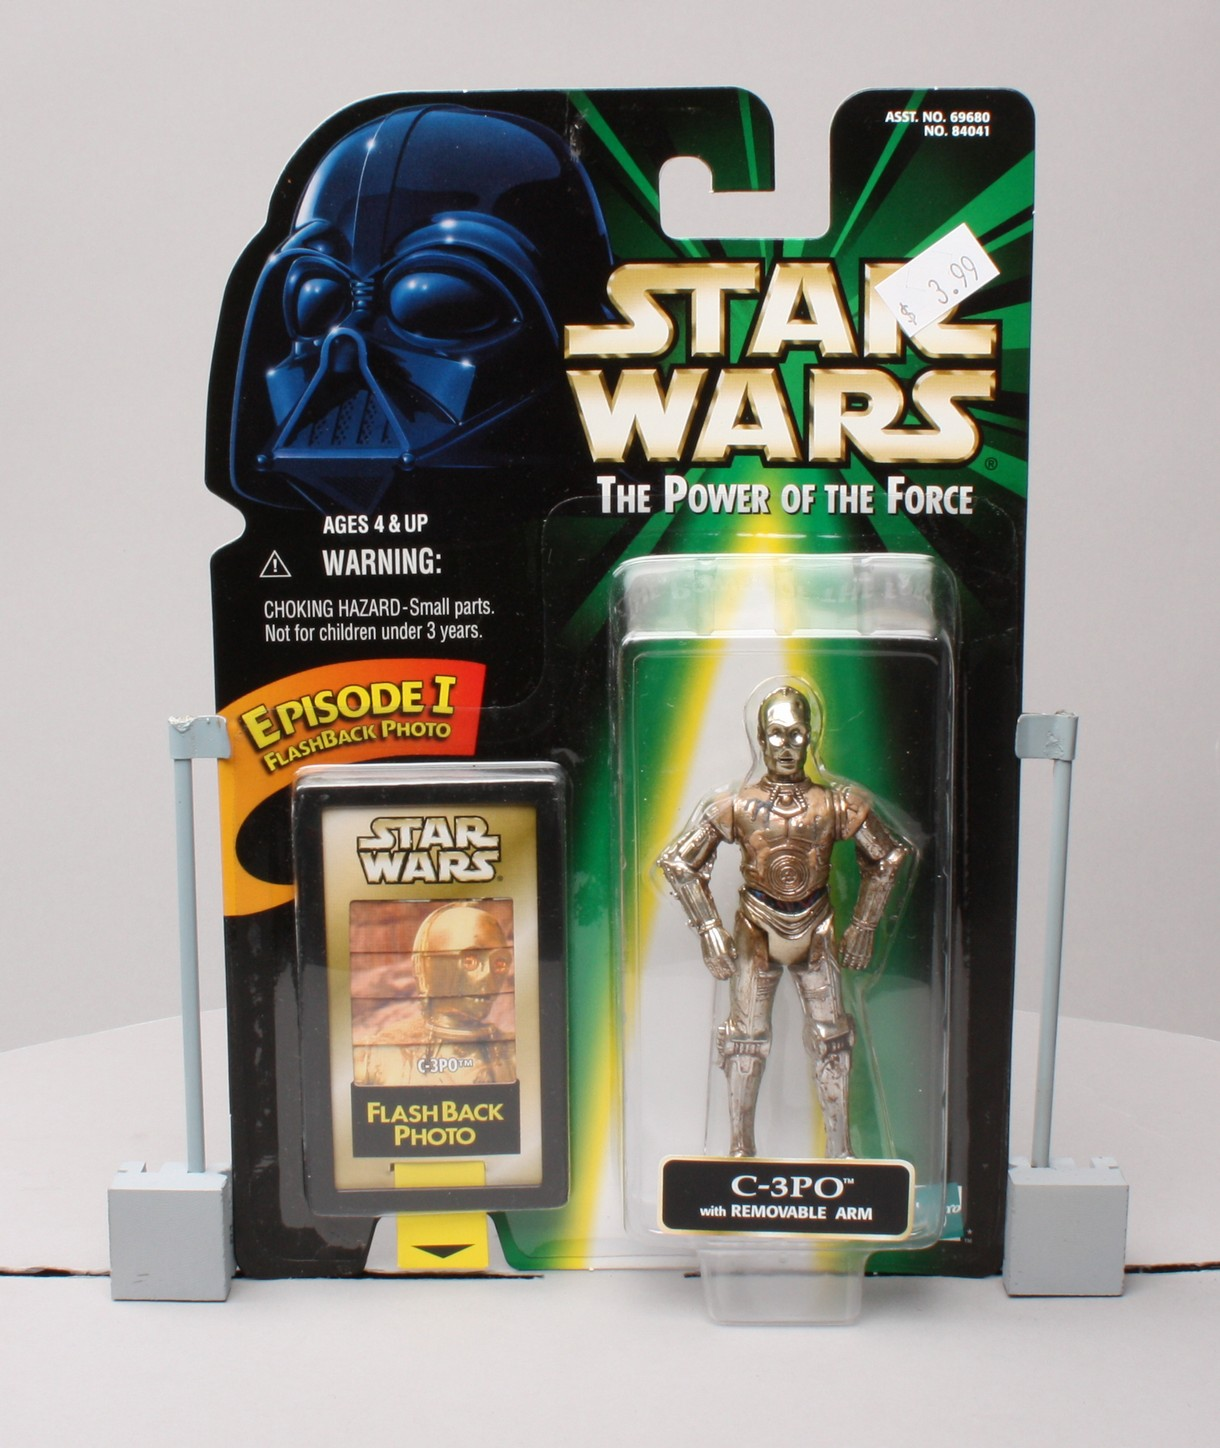 C-3PO with Removable Arm